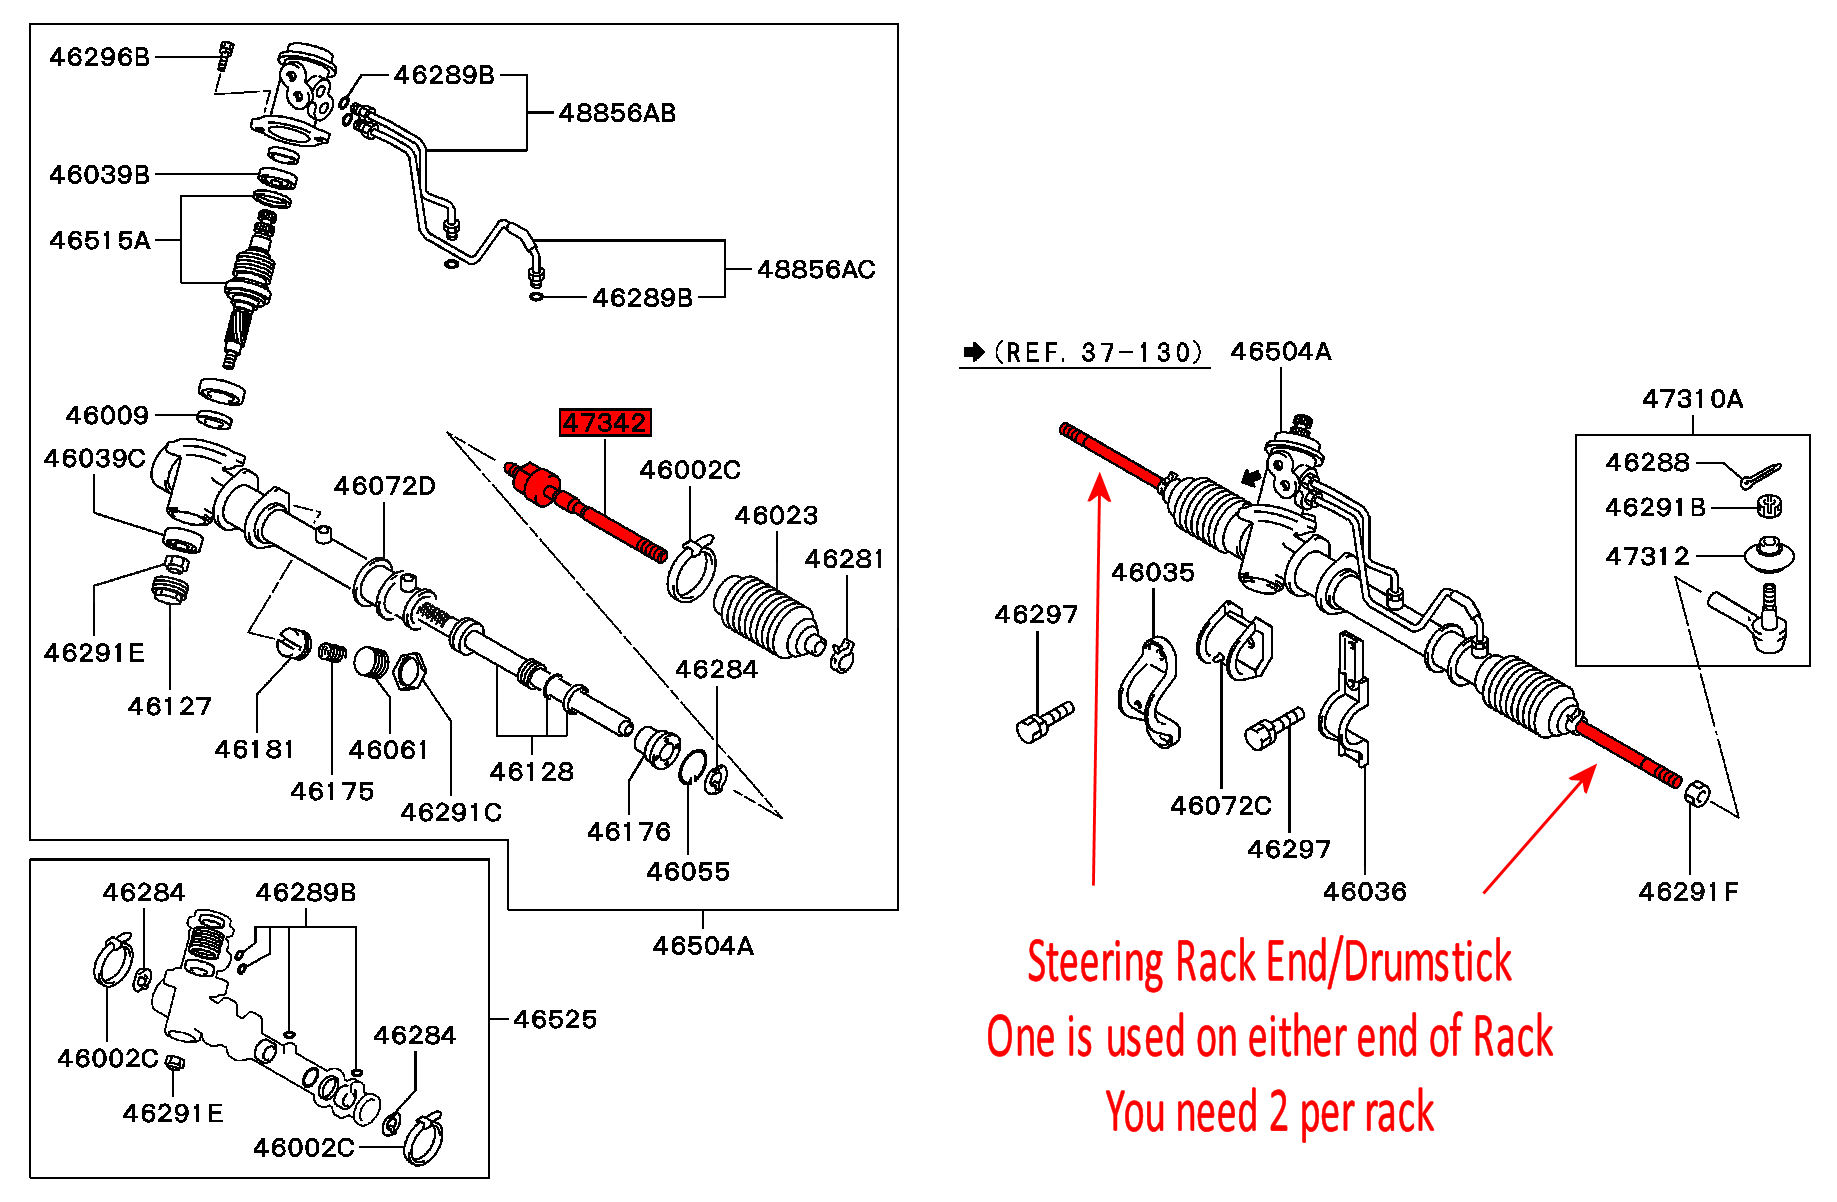 Viamoto Car Parts Mitsubishi Lancer Gsr Turbo 18 4wd Cd5a Steering Schematic Whatever You Call It Its The Part Track Rod End Screws Onto And Thats Covered By Rack Boot See Here For Exploded Diagram